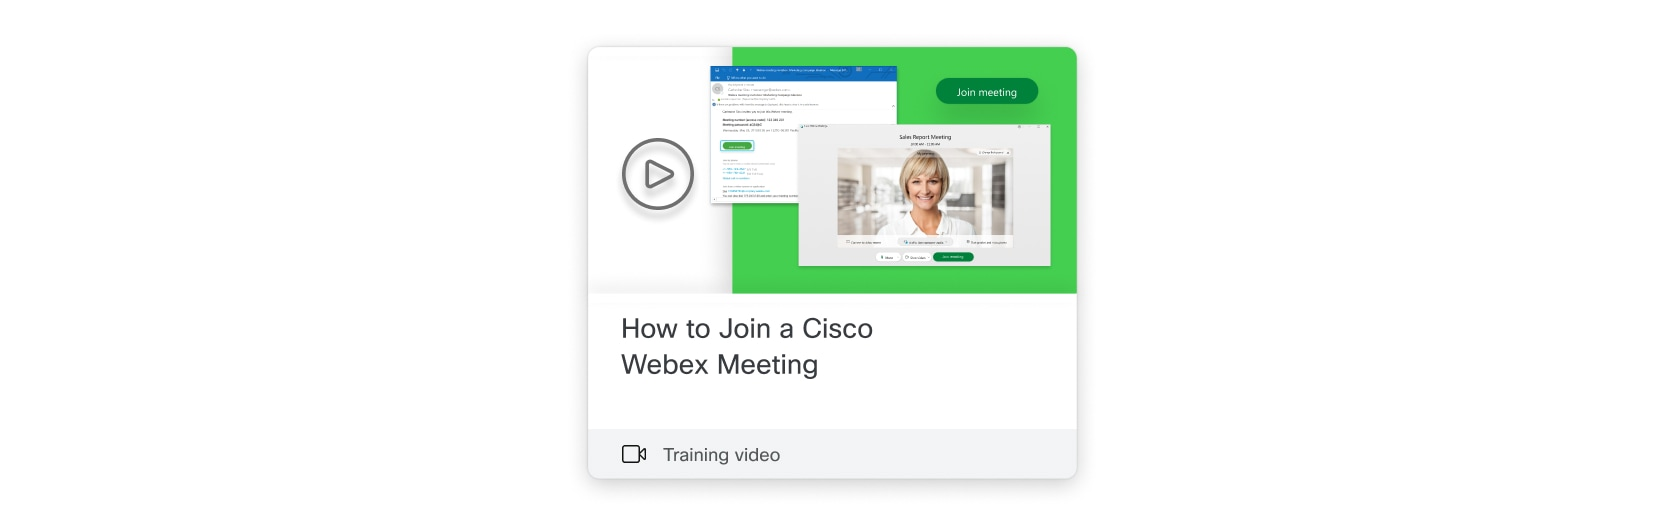 Check out How to Join a Cisco Webex Meeting with a Youtube training video.